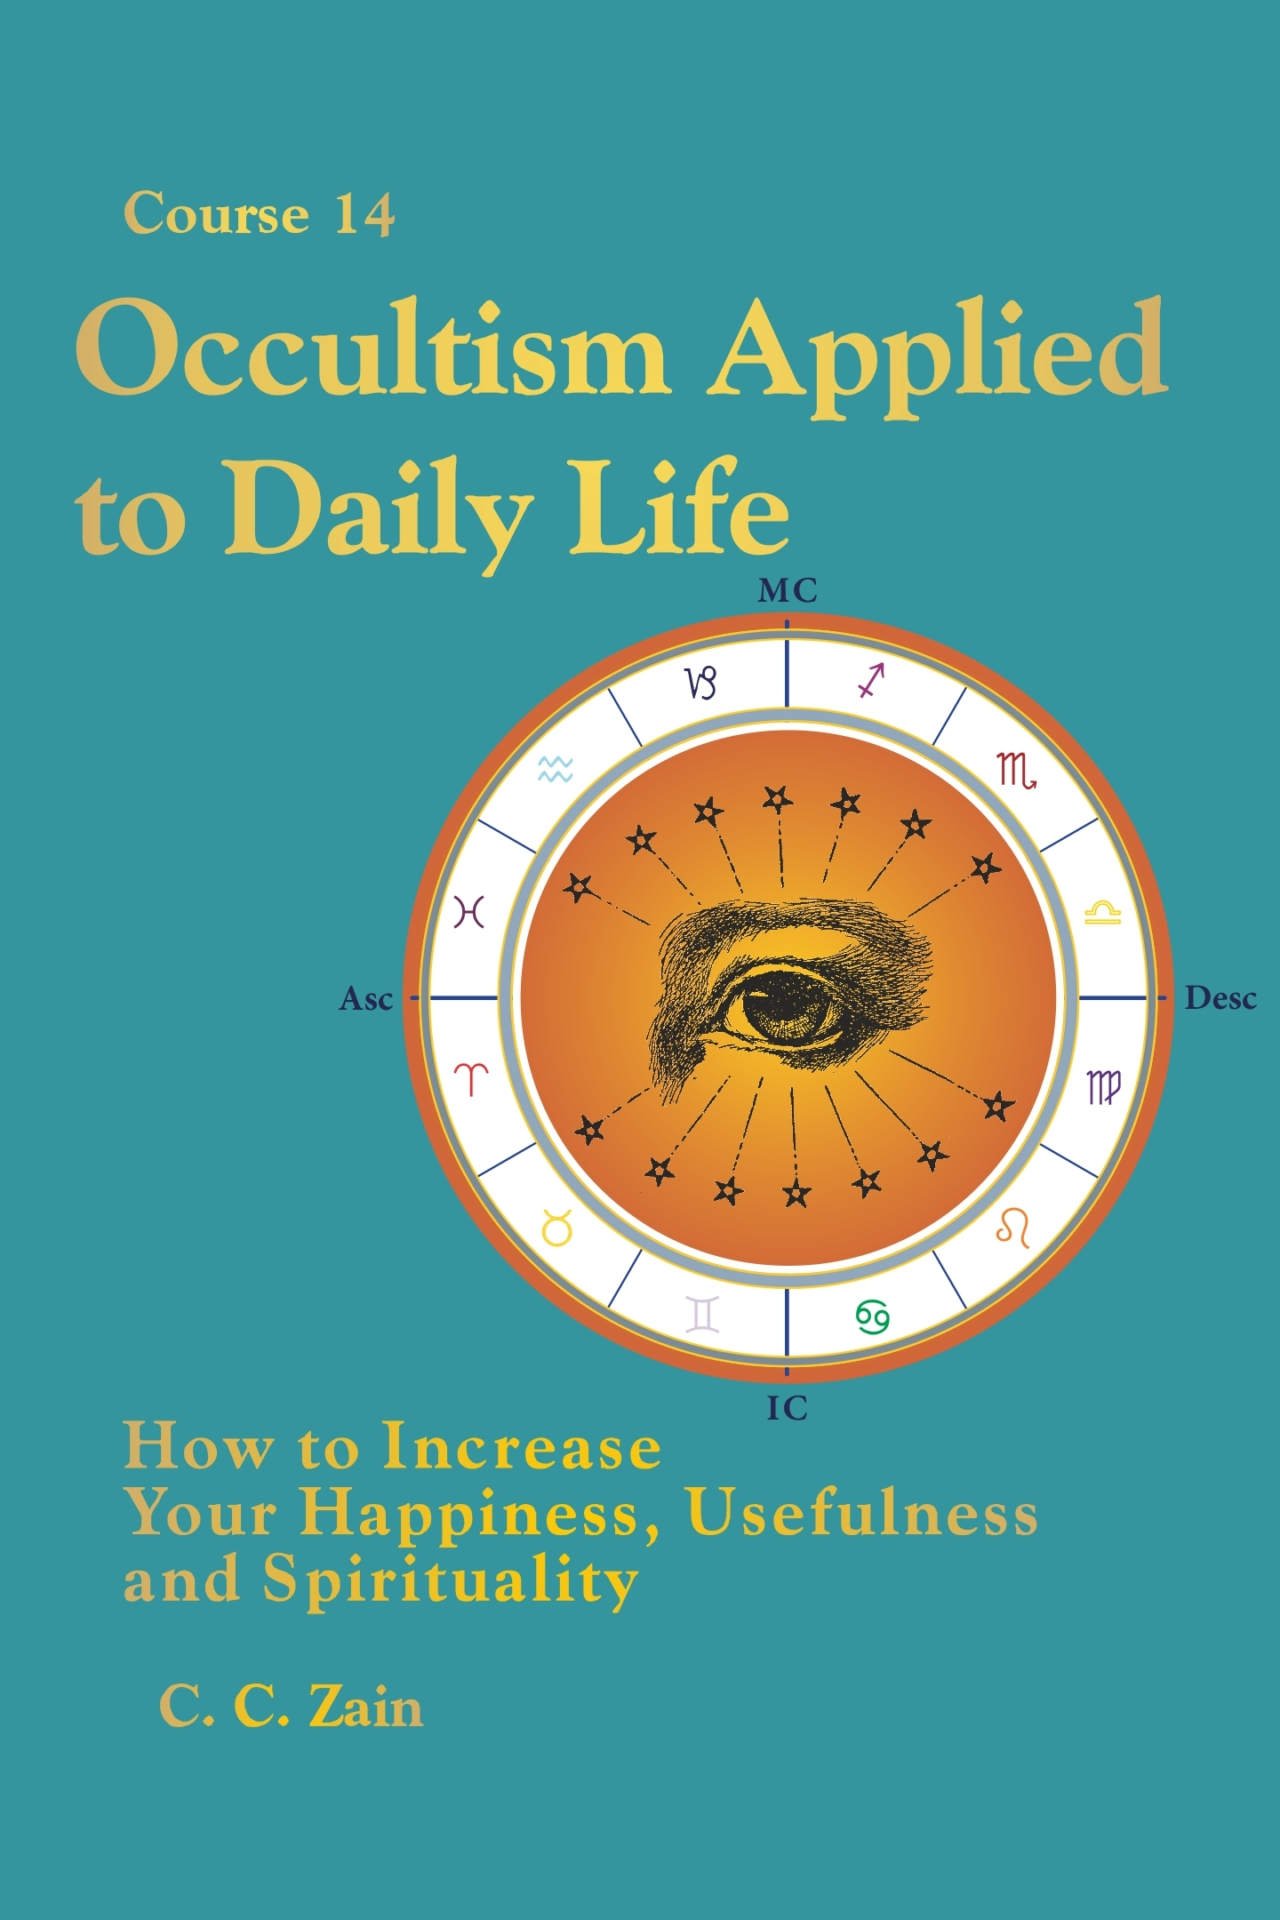 https://study.academyofhermeticarts.org/wp-content/uploads/2020/04/14_Occultism_Applied_to_Daily_Life_Reading_eBook_Cover-1280x1920.jpg